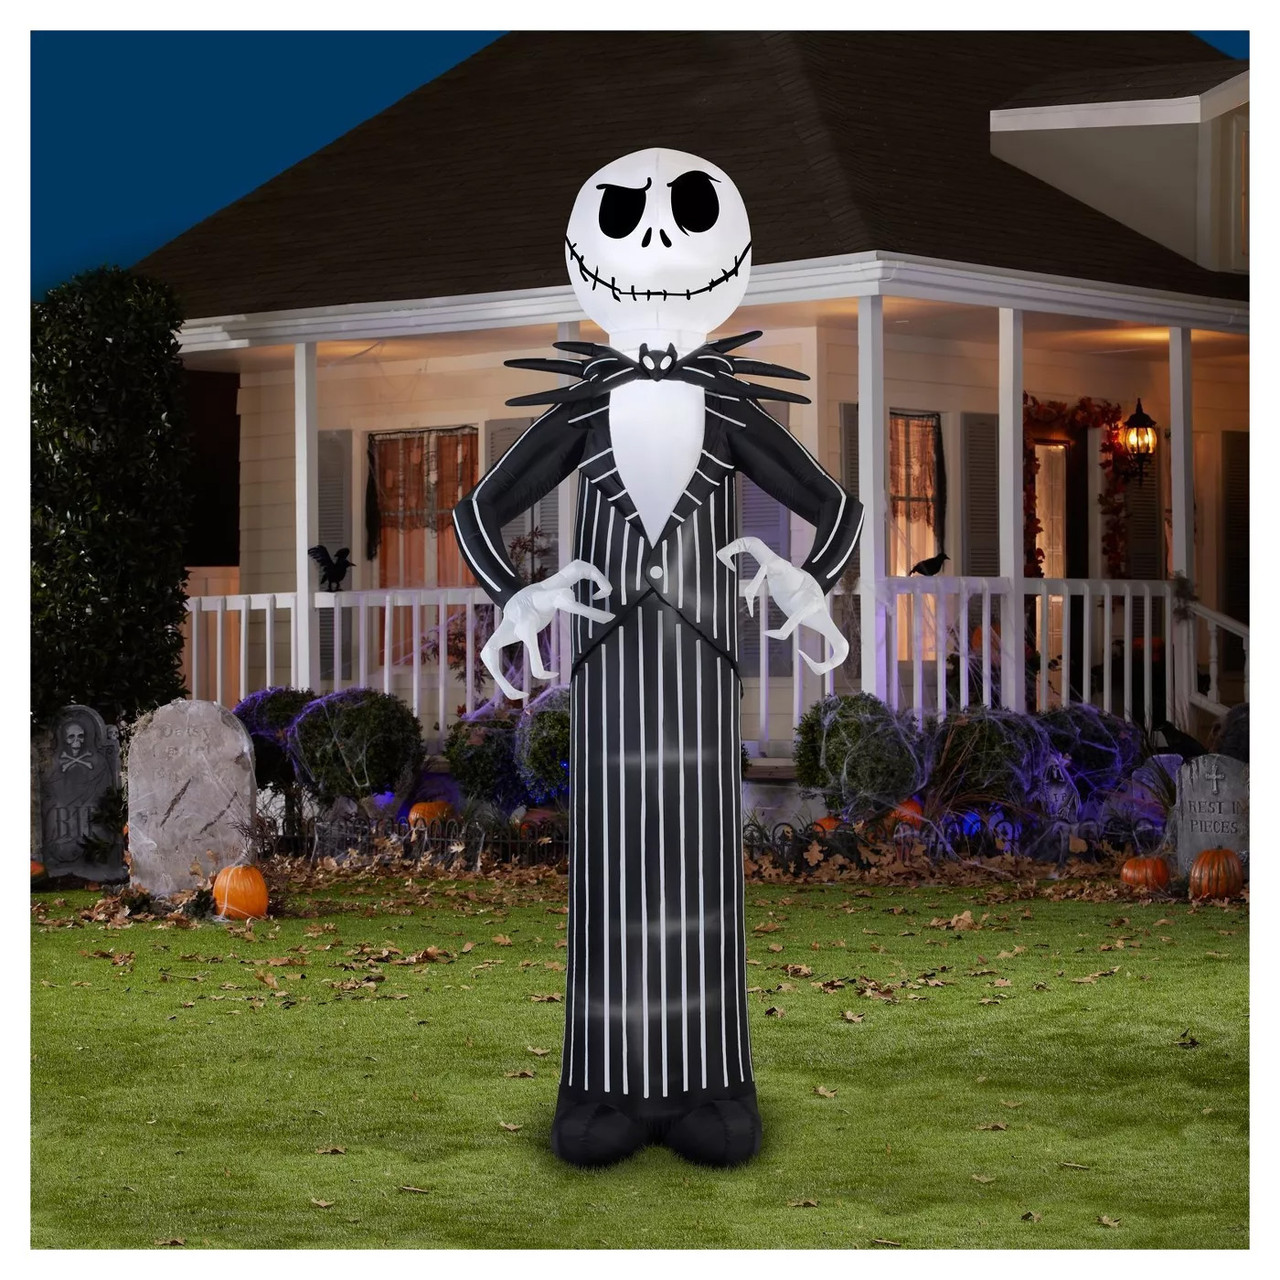 120 Tall Lighted Jack Skellington Giant Air Blown Airblown Inflatable Nightmare Before Christmas Yard Decor Outdoor Decoration